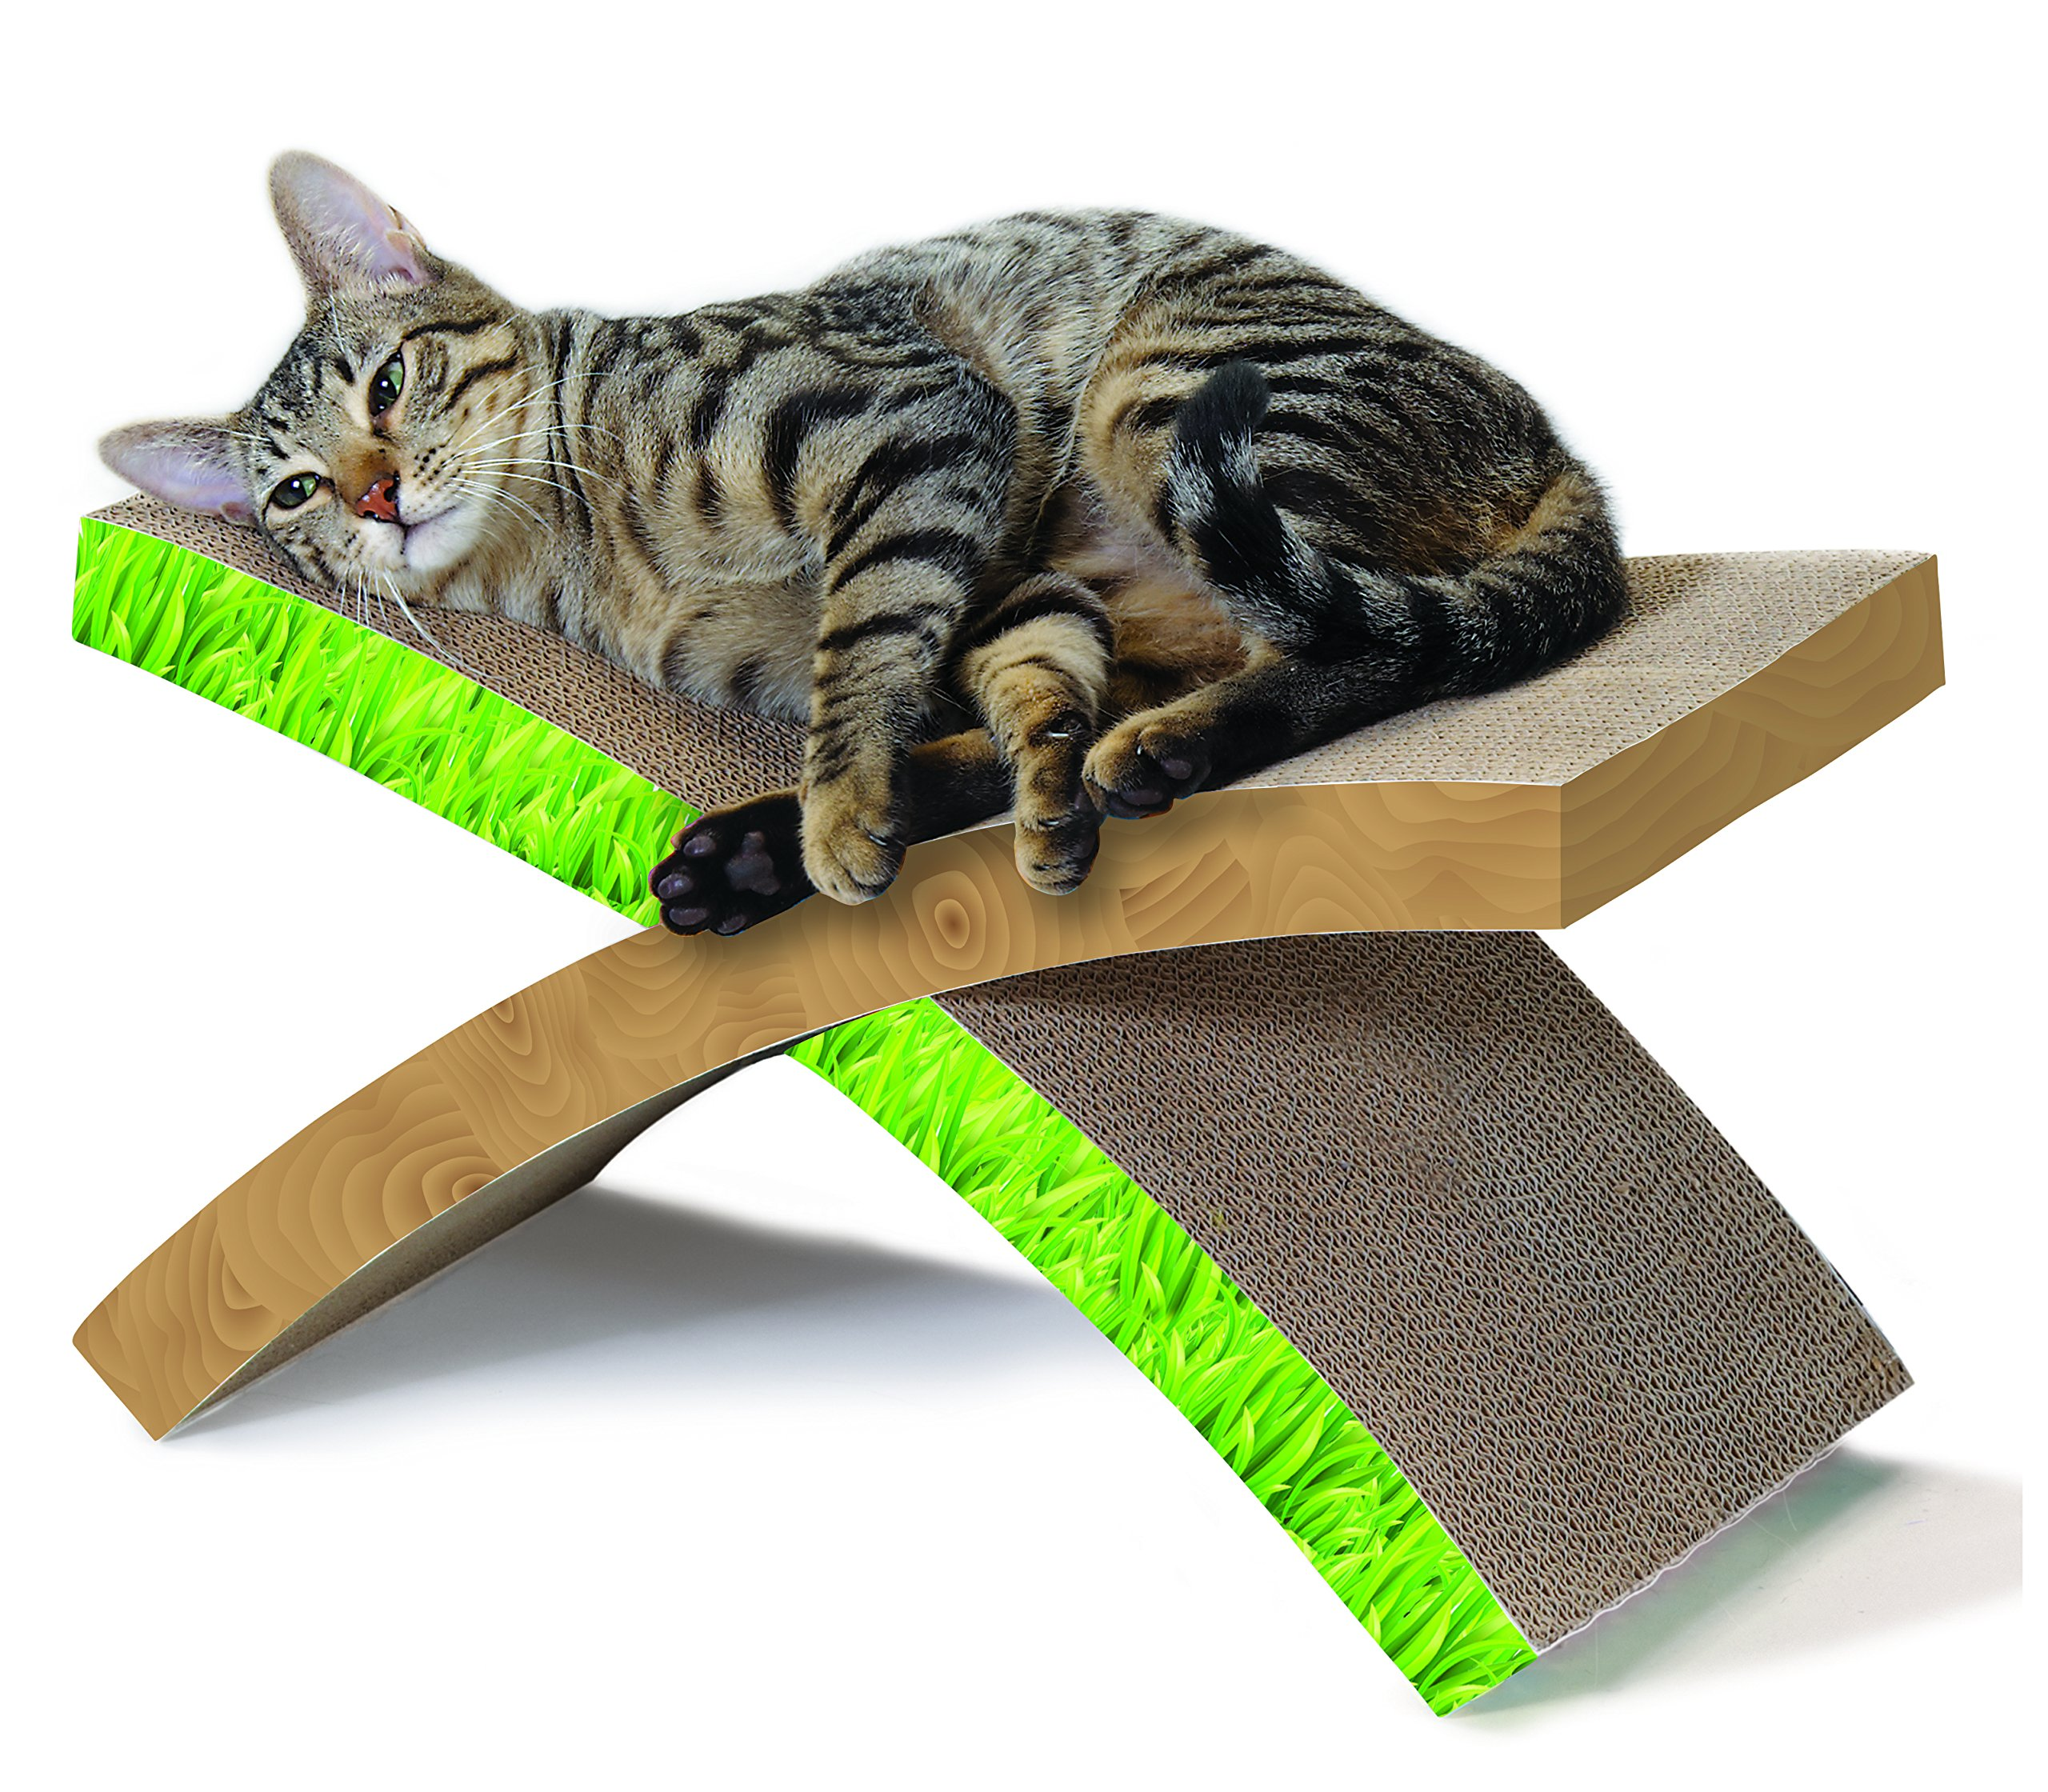 Cat Hammock Scratcher Invironment Easy Life Cat Scratcher and Rest by Petstages